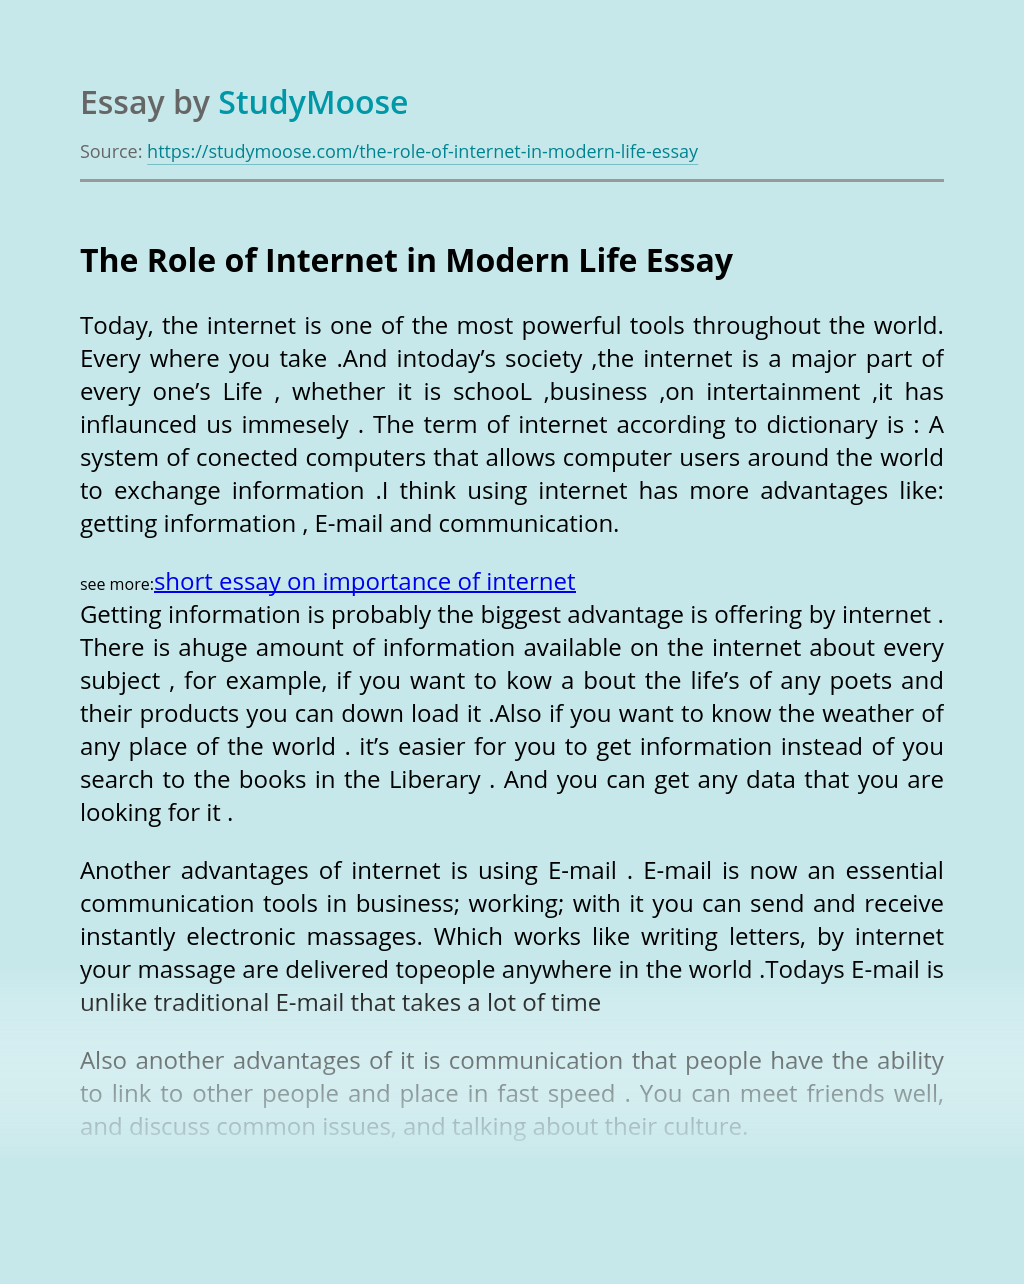 The Role of Internet in Modern Life